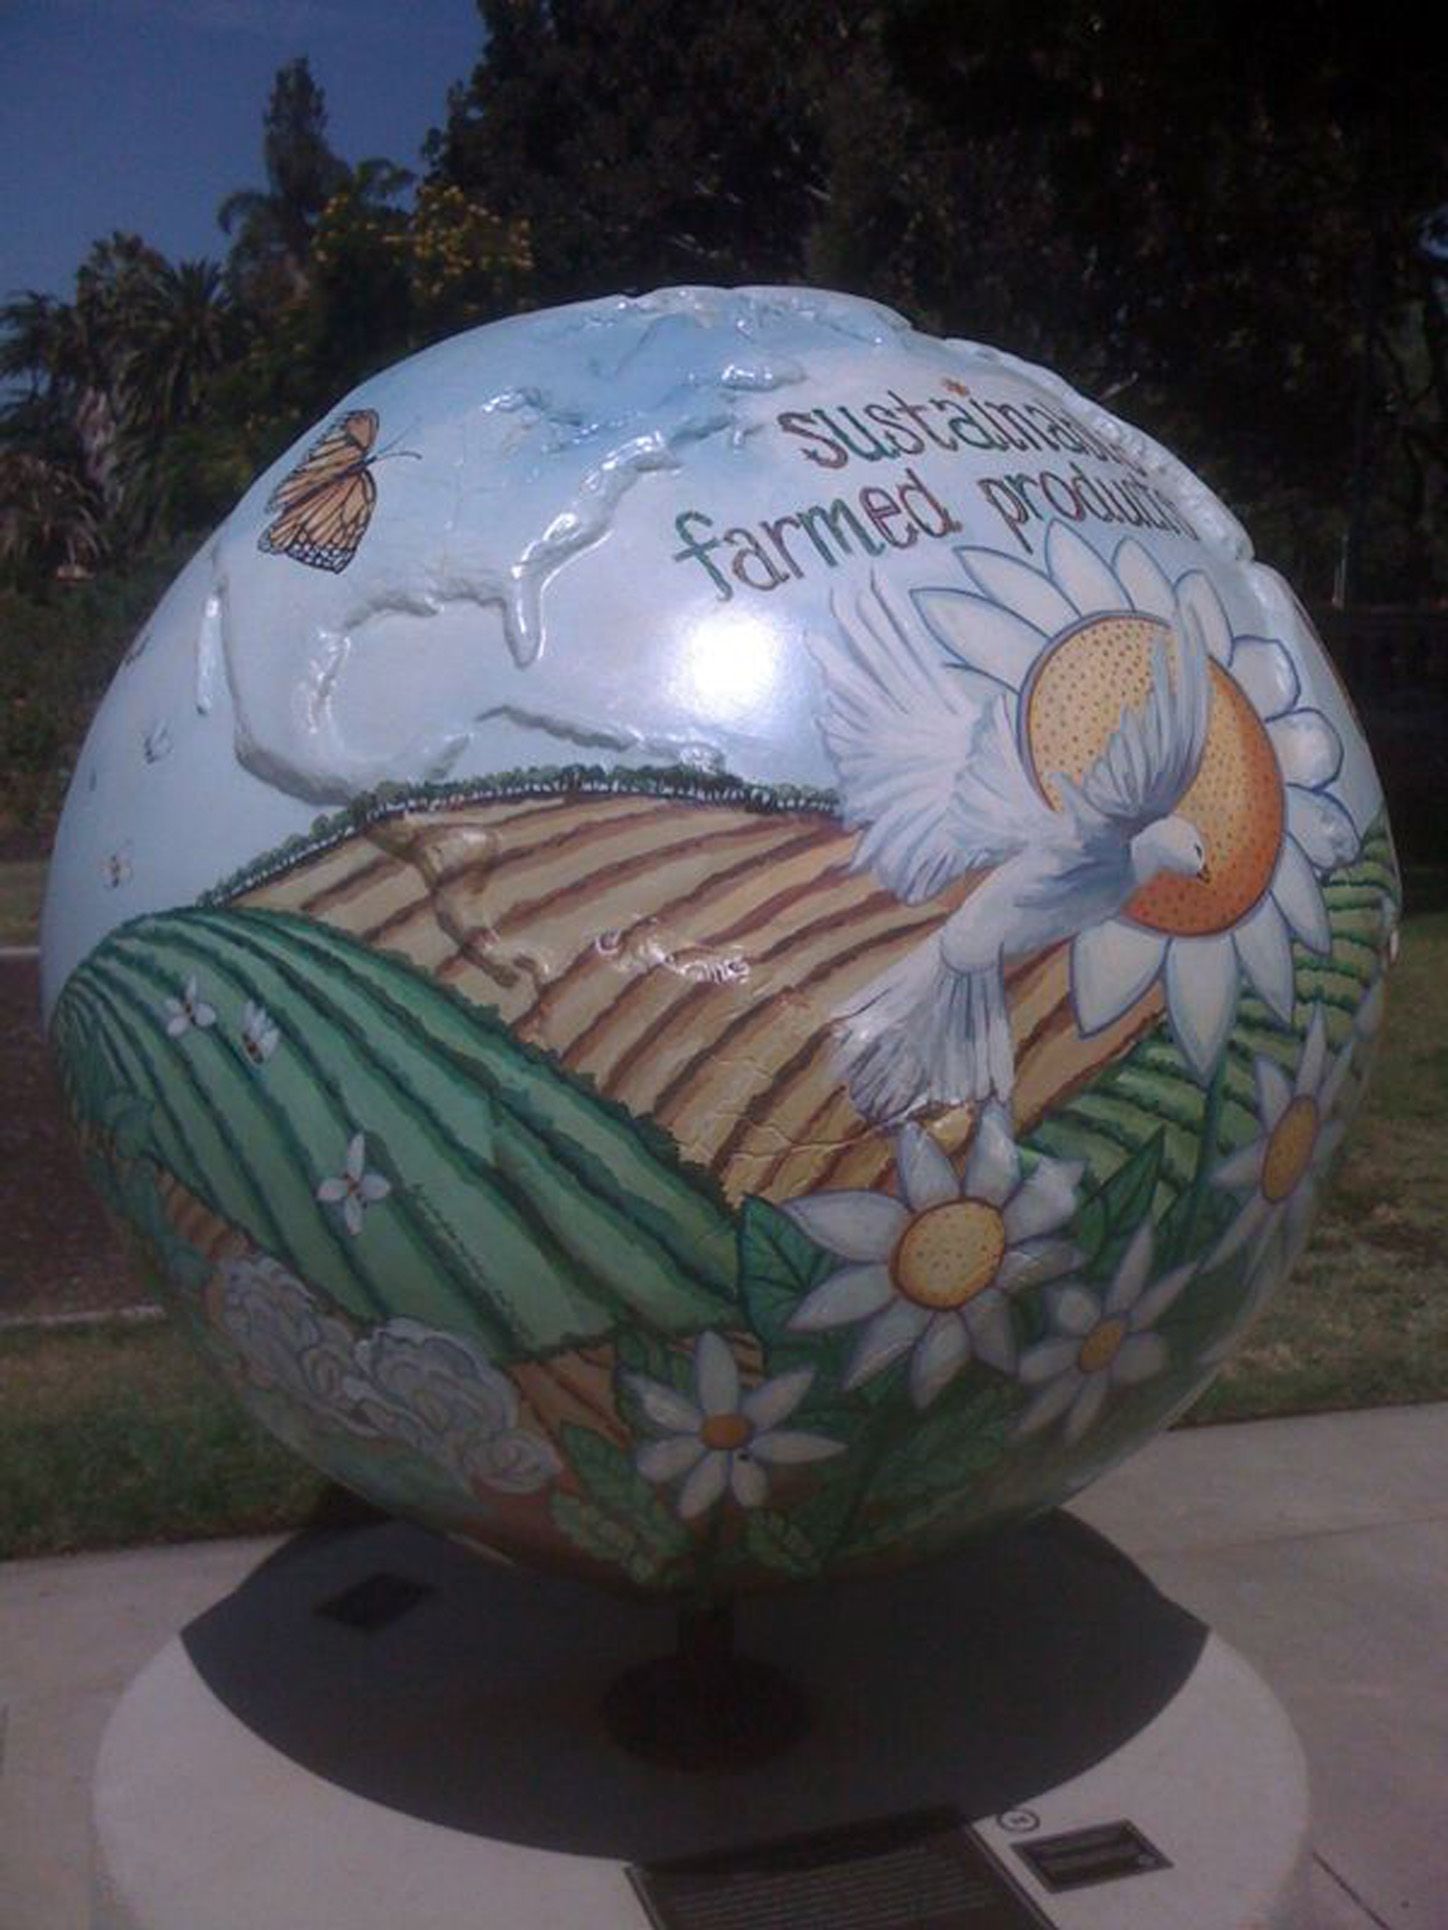 Cool Globes, Chicago, Navy Pier